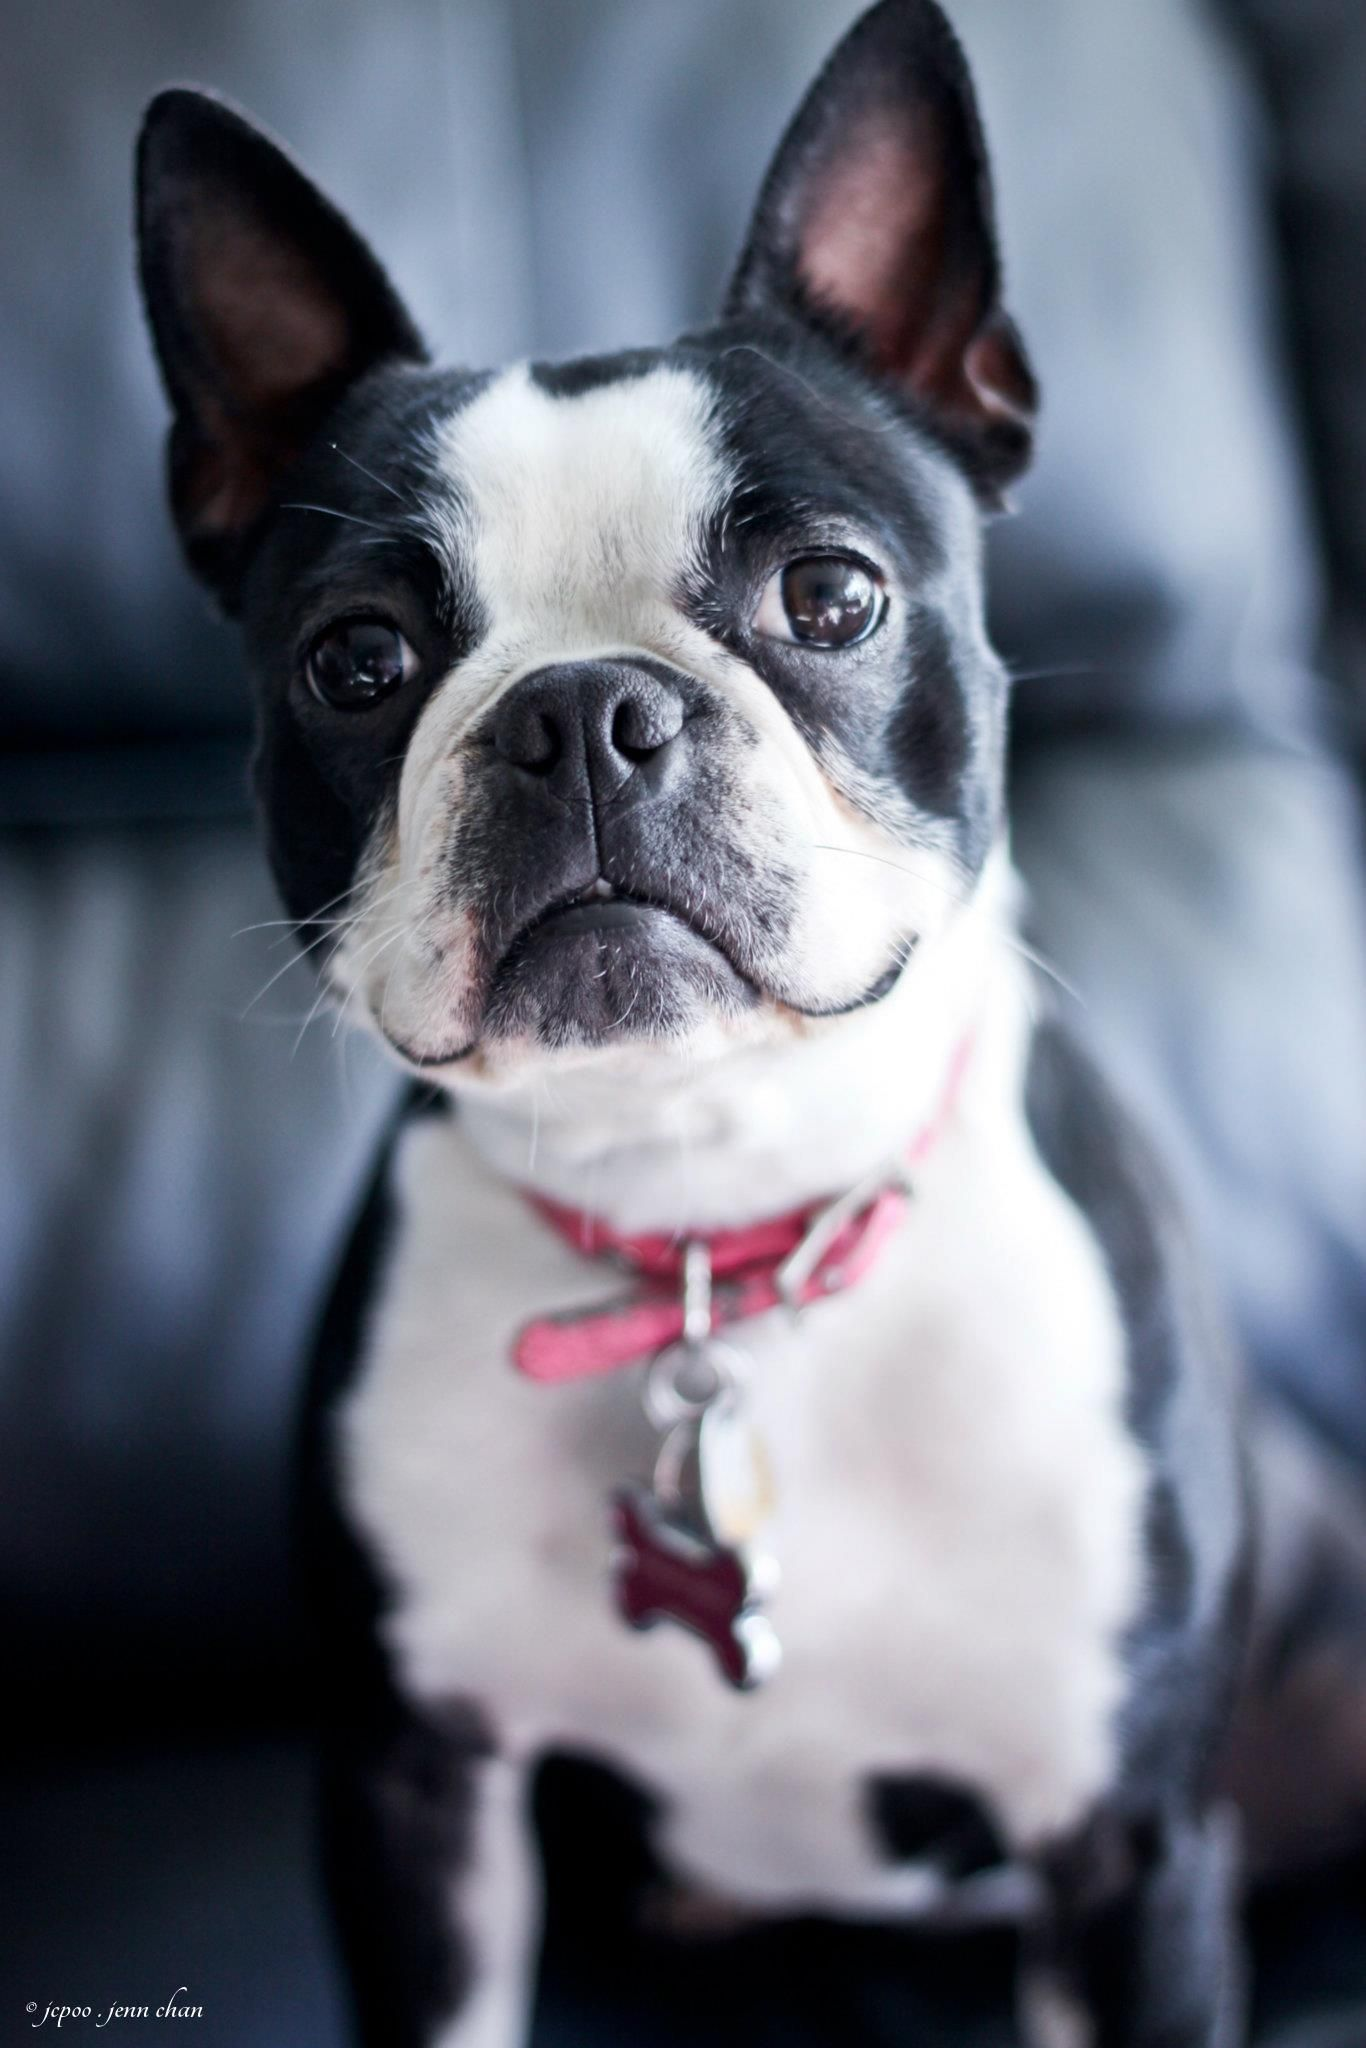 Belle 3/4 Boston Terrier 1/4 Frenchie Boston terrier